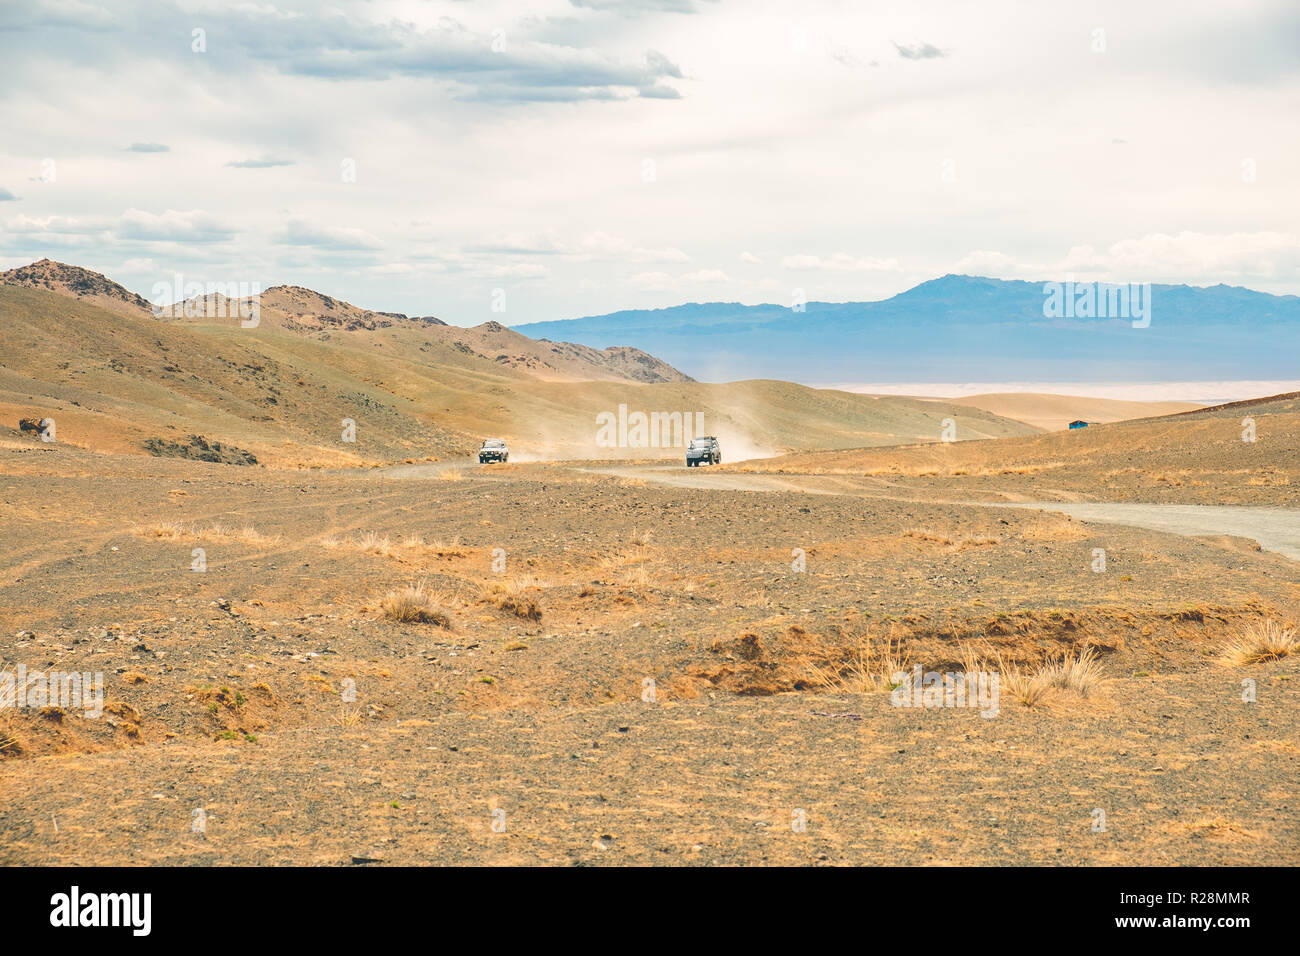 Fast approaching cars with dust trails driving on rugged terrain in Gobi desert, Mongolia. - Stock Image